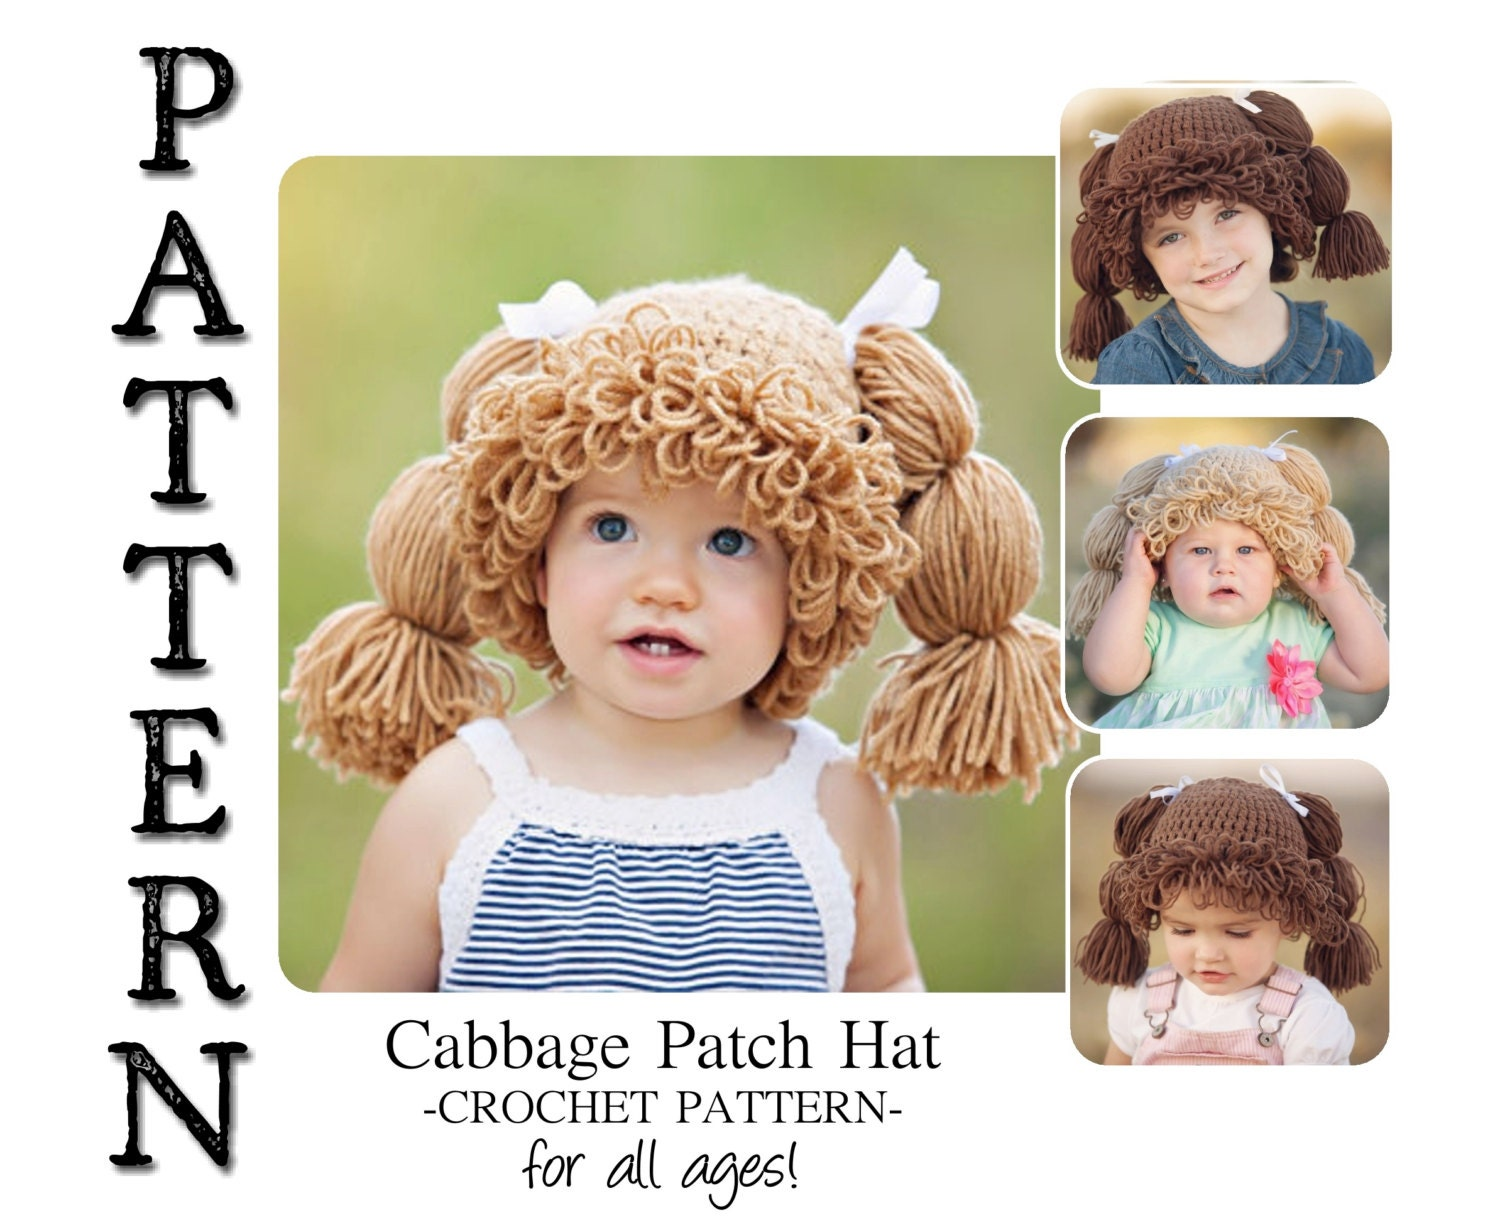 Pattern Cabbage Patch Crochet Hat For All Ages